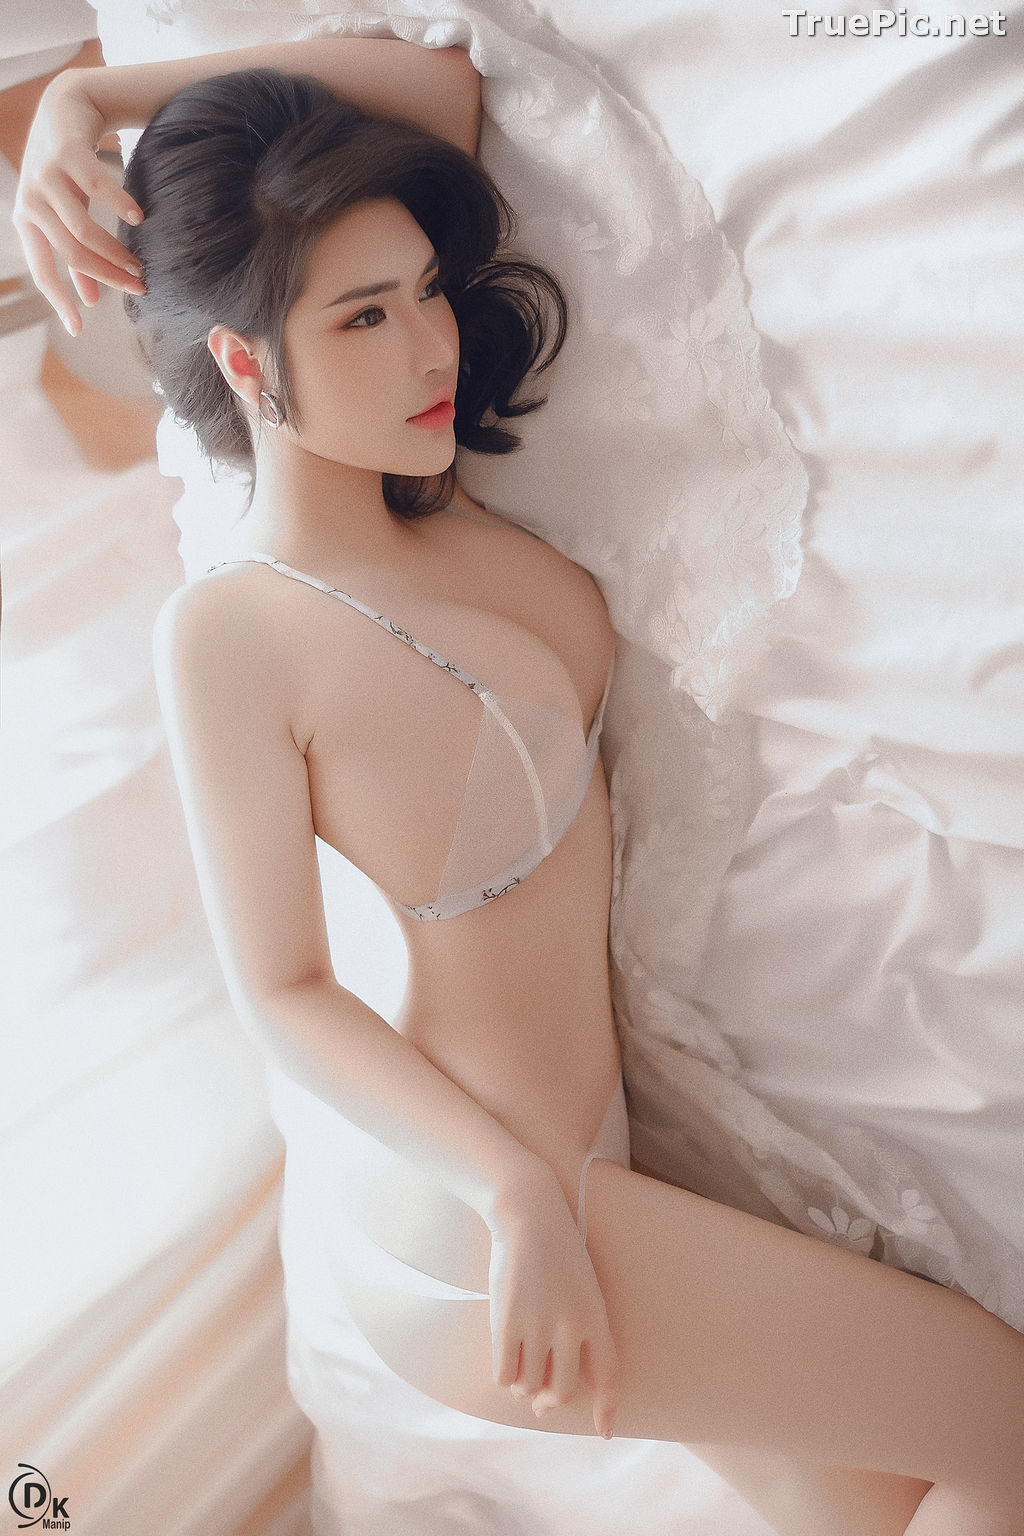 Image Vietnamese Model - Beautiful Girl in Sexy Transparent White Lingerie - TruePic.net - Picture-2